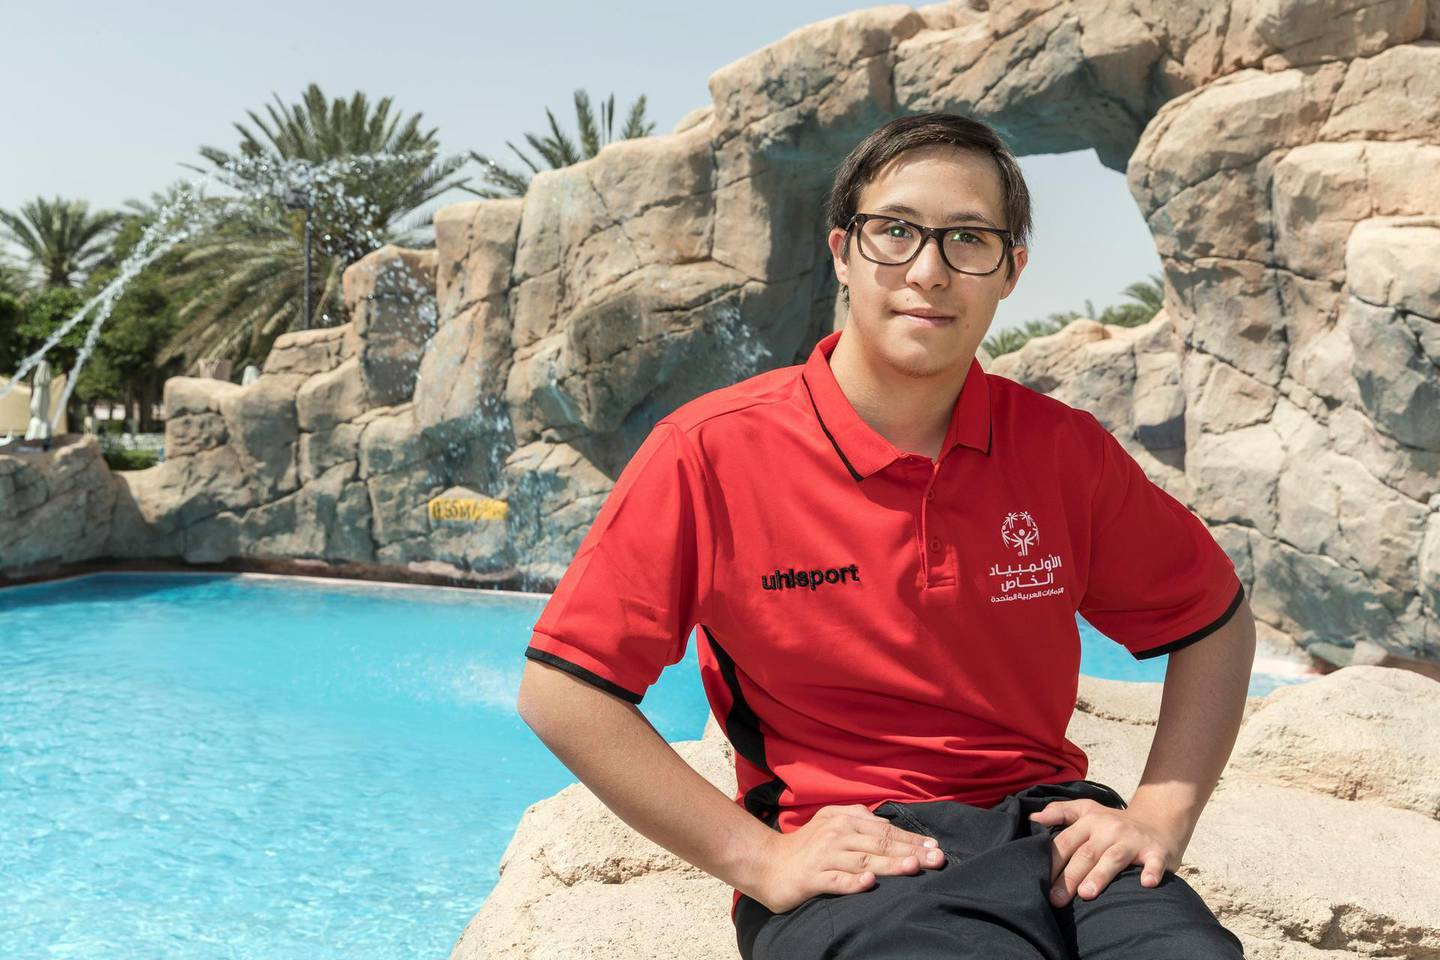 AL AIN, UNITED ARAB EMIRATES. 11 MARCH 2018.  UAE National Swimming Team member Omar Al Shami at the Danat Al AIn resort in preparation for the upcoming Special Olympics. (Photo: Antonie Robertson/The National) Journalist: Ramola Talwar. Section: National.